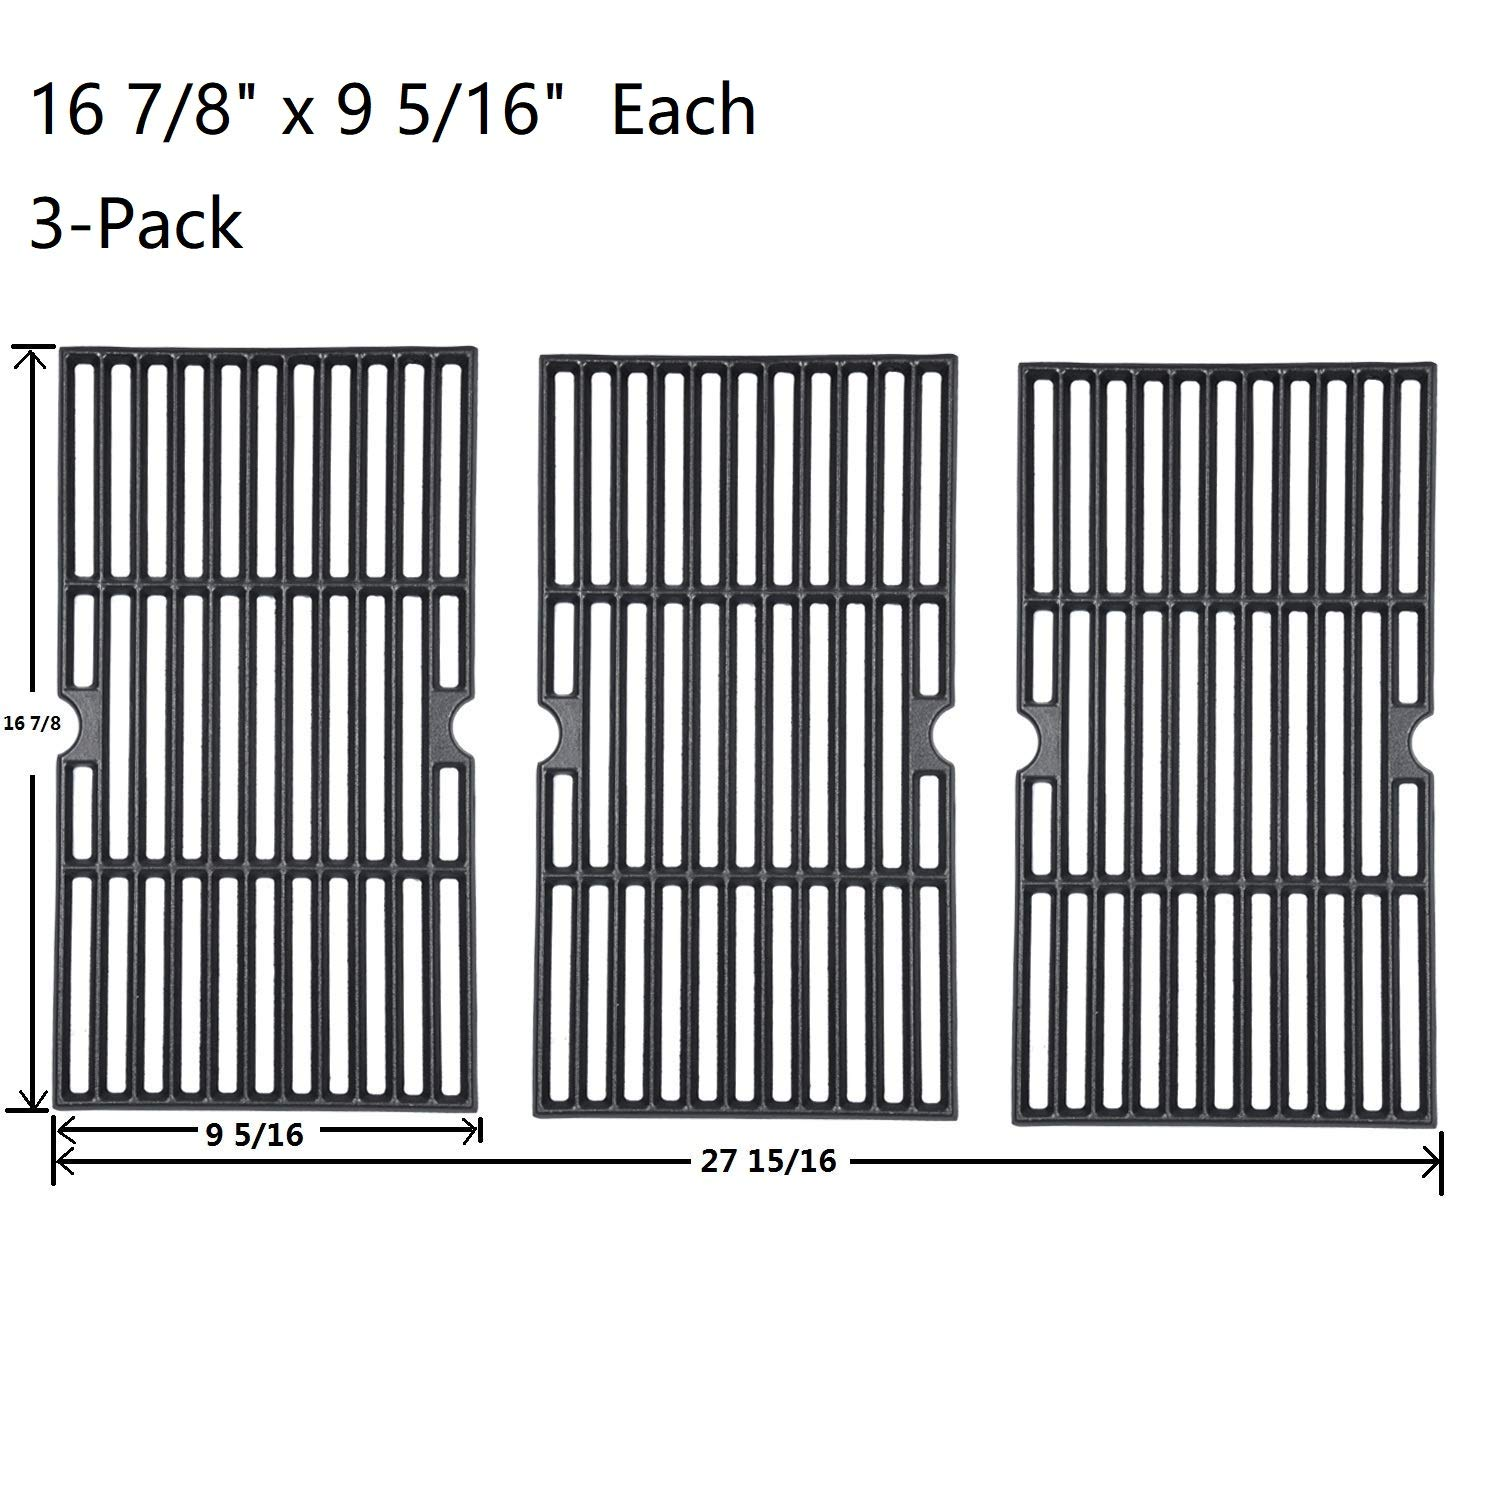 """GasSaf 16 7/8"""" Cast Iron Grill Grates Replacement for Charbroil 463420508, 463420509, 463420511, 463436213, 463436214, 463440109,Master Chef, Thermos,Backyard and Others(16 7/8"""" x 9 5/16"""")(Set of 3)"""